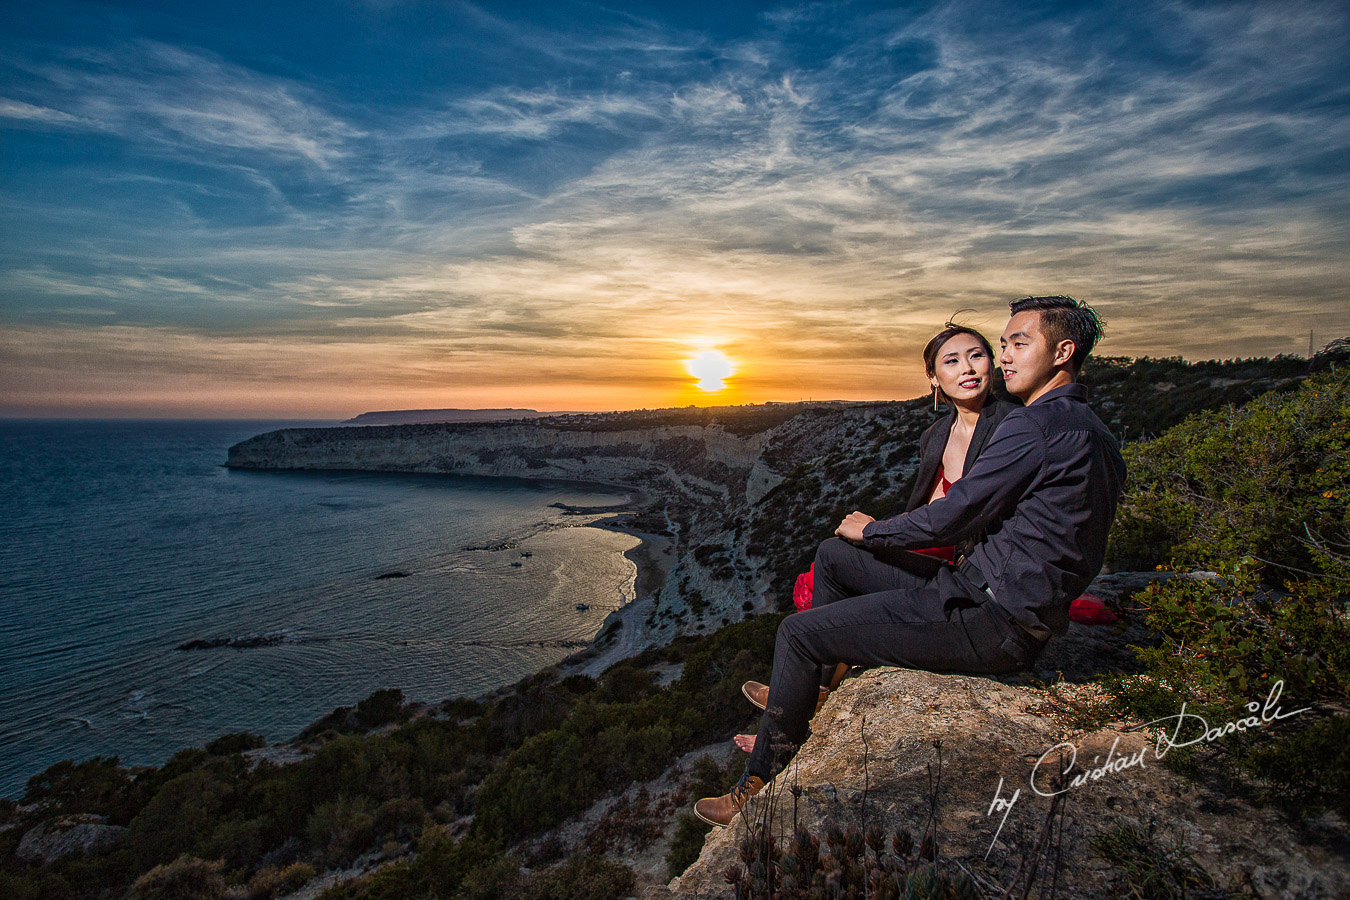 Pre-wedding Photography in Cyprus - 18